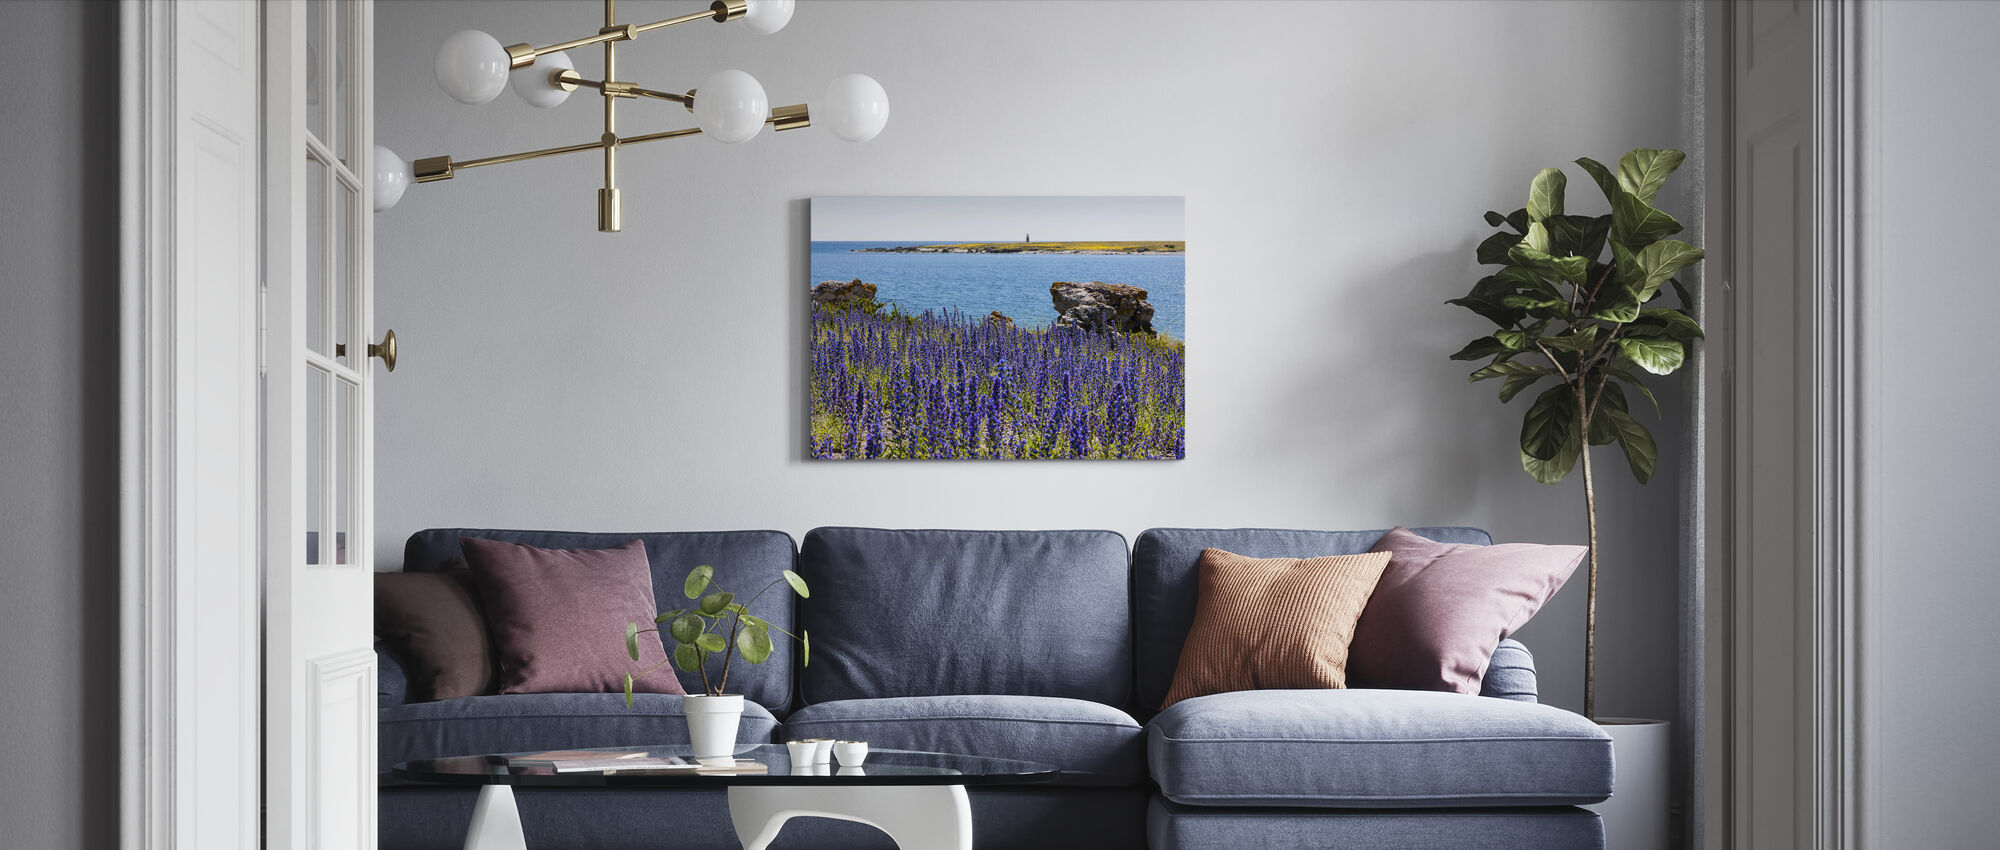 Gotland Summer Landscape - Canvas print - Living Room